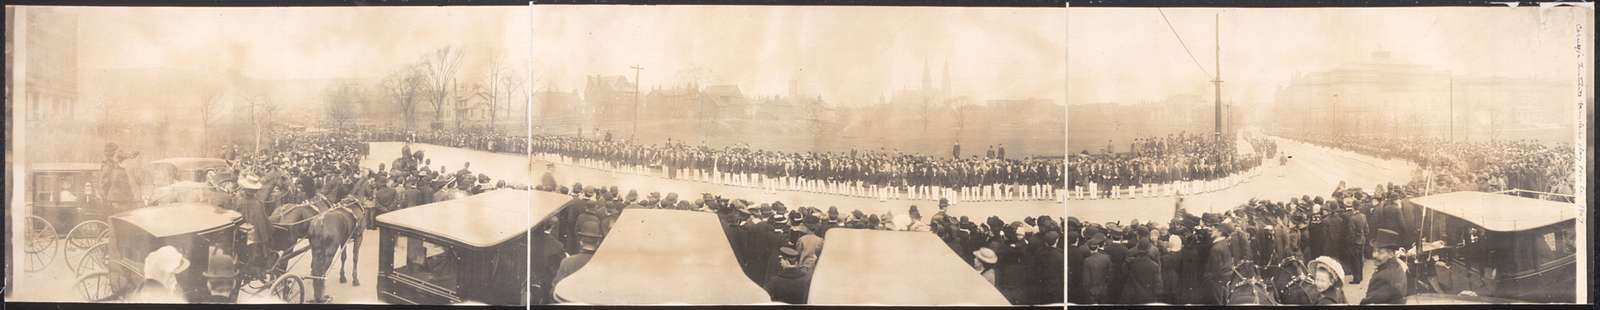 [Carnegie Institute Founders Day Parade, 1907]